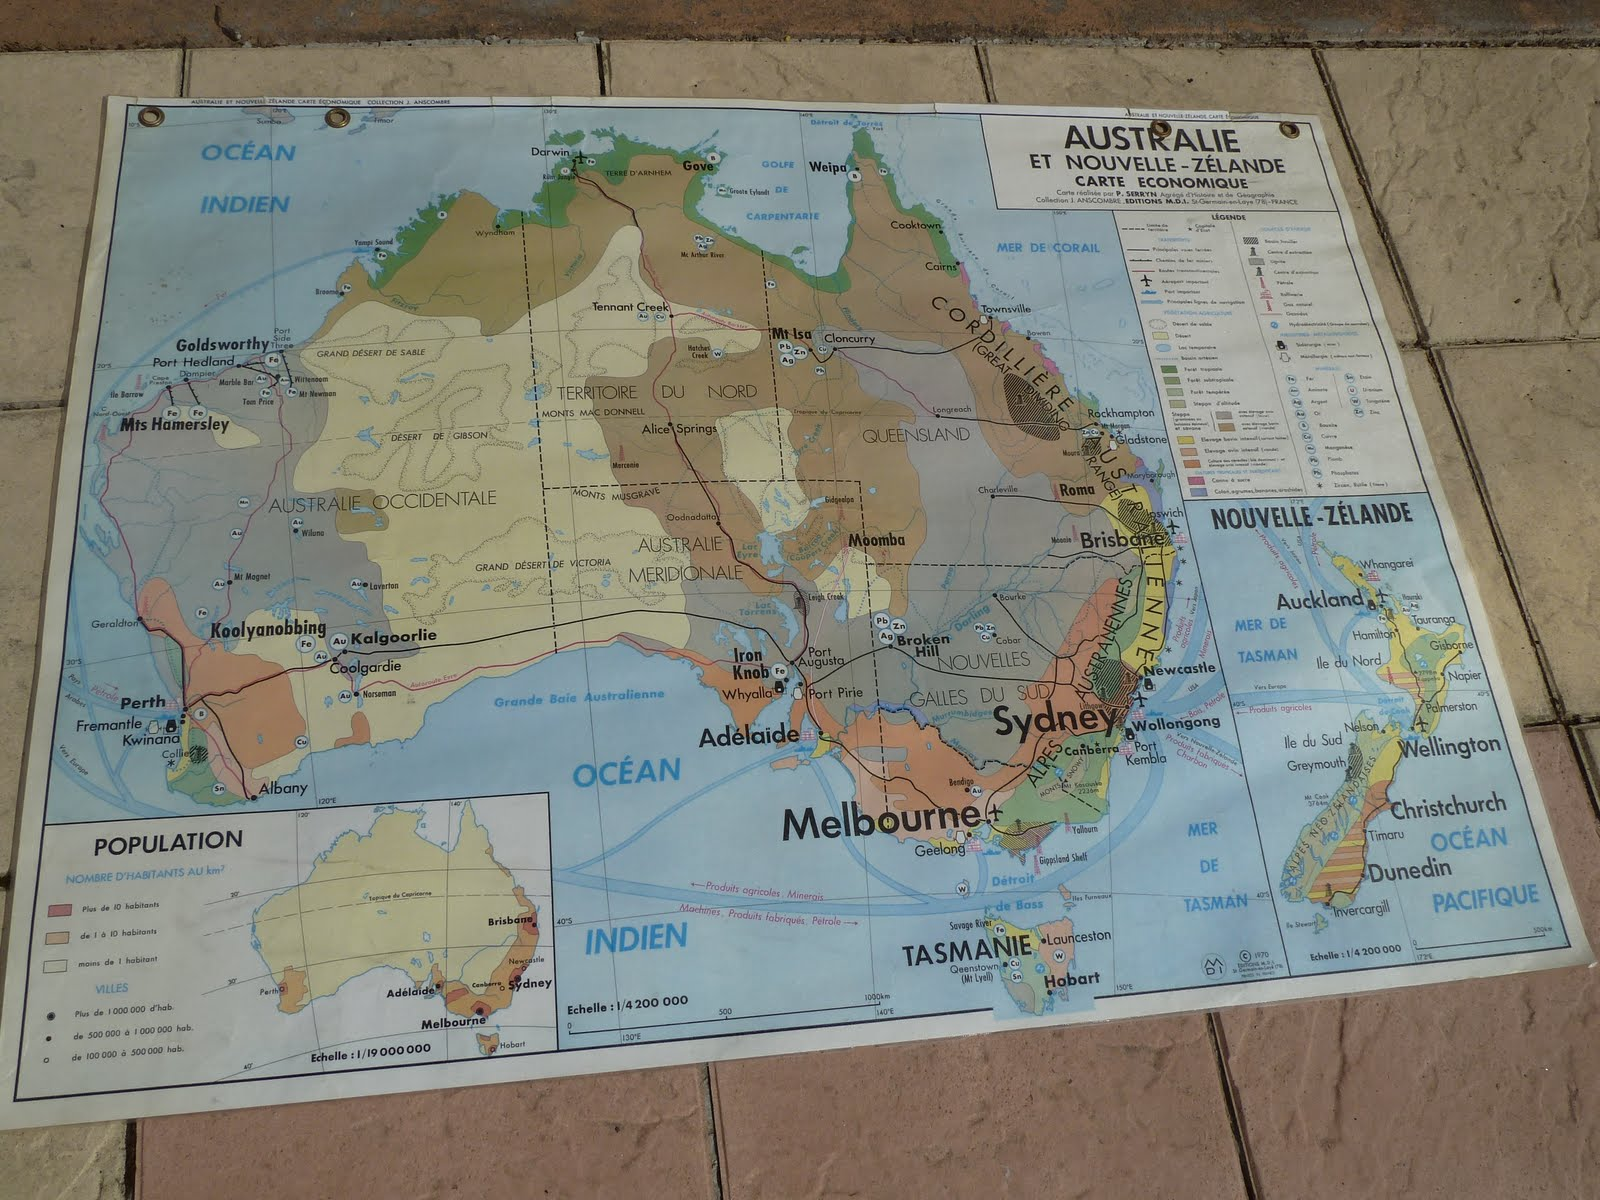 Vintage french posters botany animals anatomy old world maps from french map of australia indonesia and oceania 1970 gumiabroncs Gallery